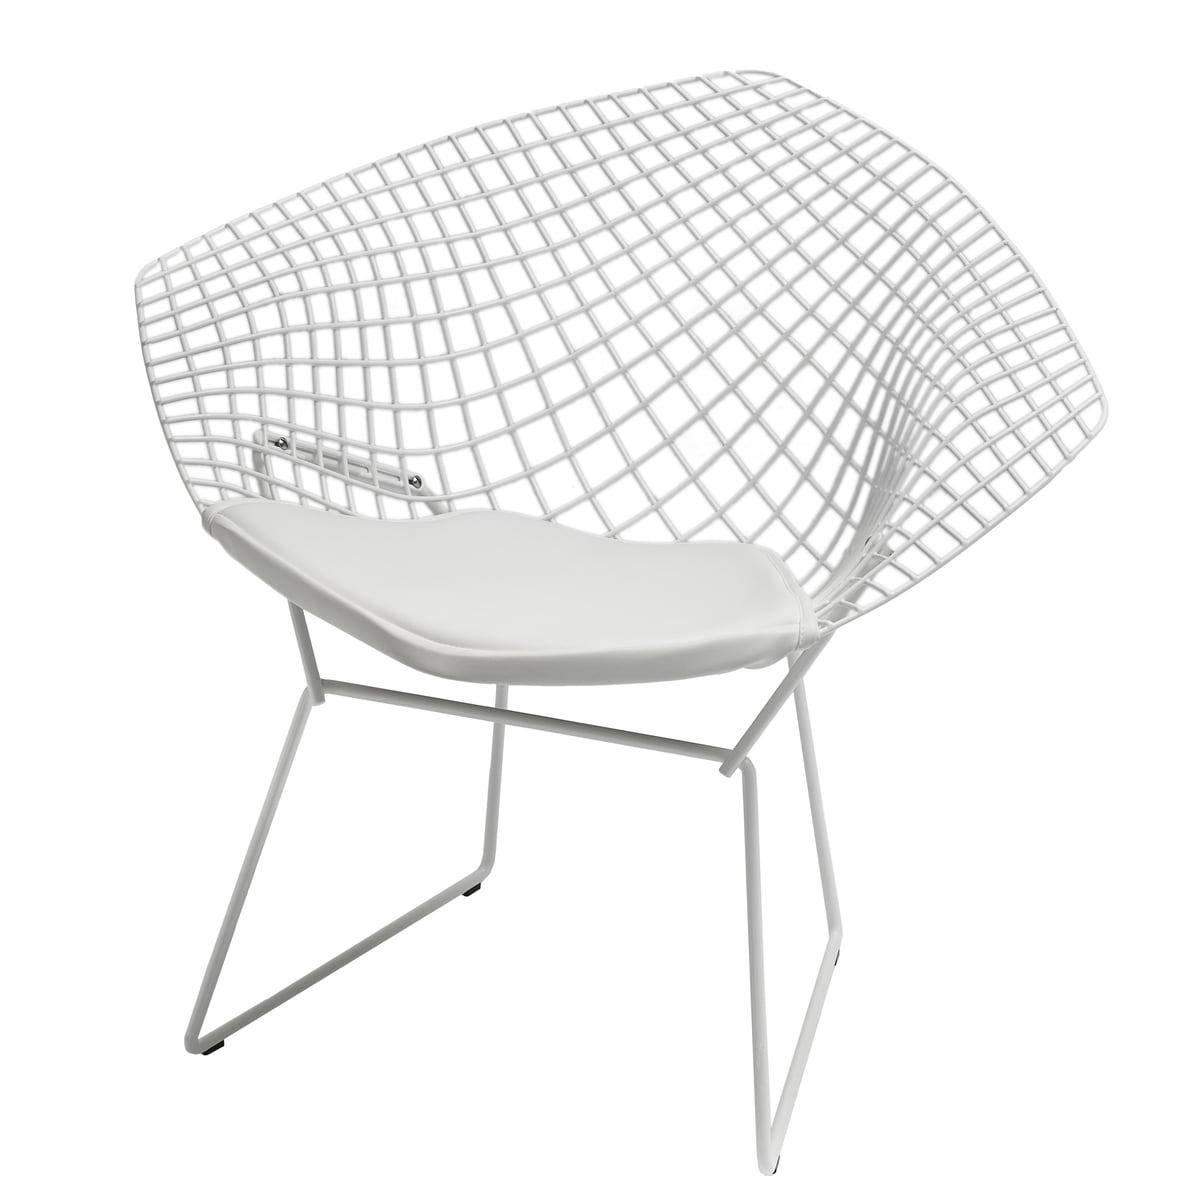 Bertoia Diamond Outdoor Sessel Von Knoll Connox